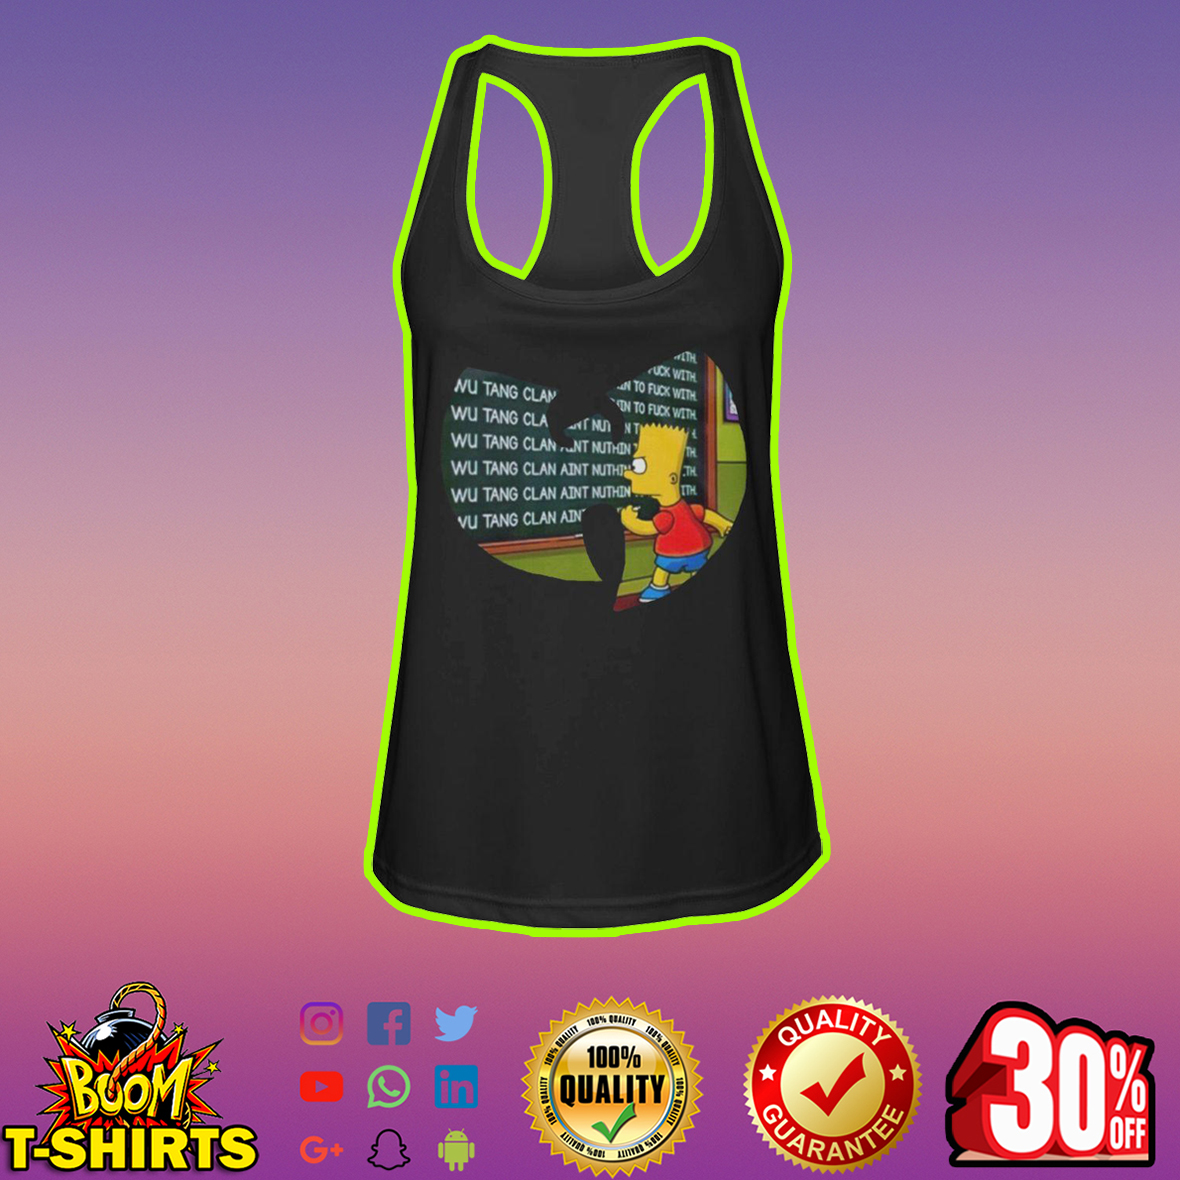 Bart Simpson Wu-Tang Clan tank top